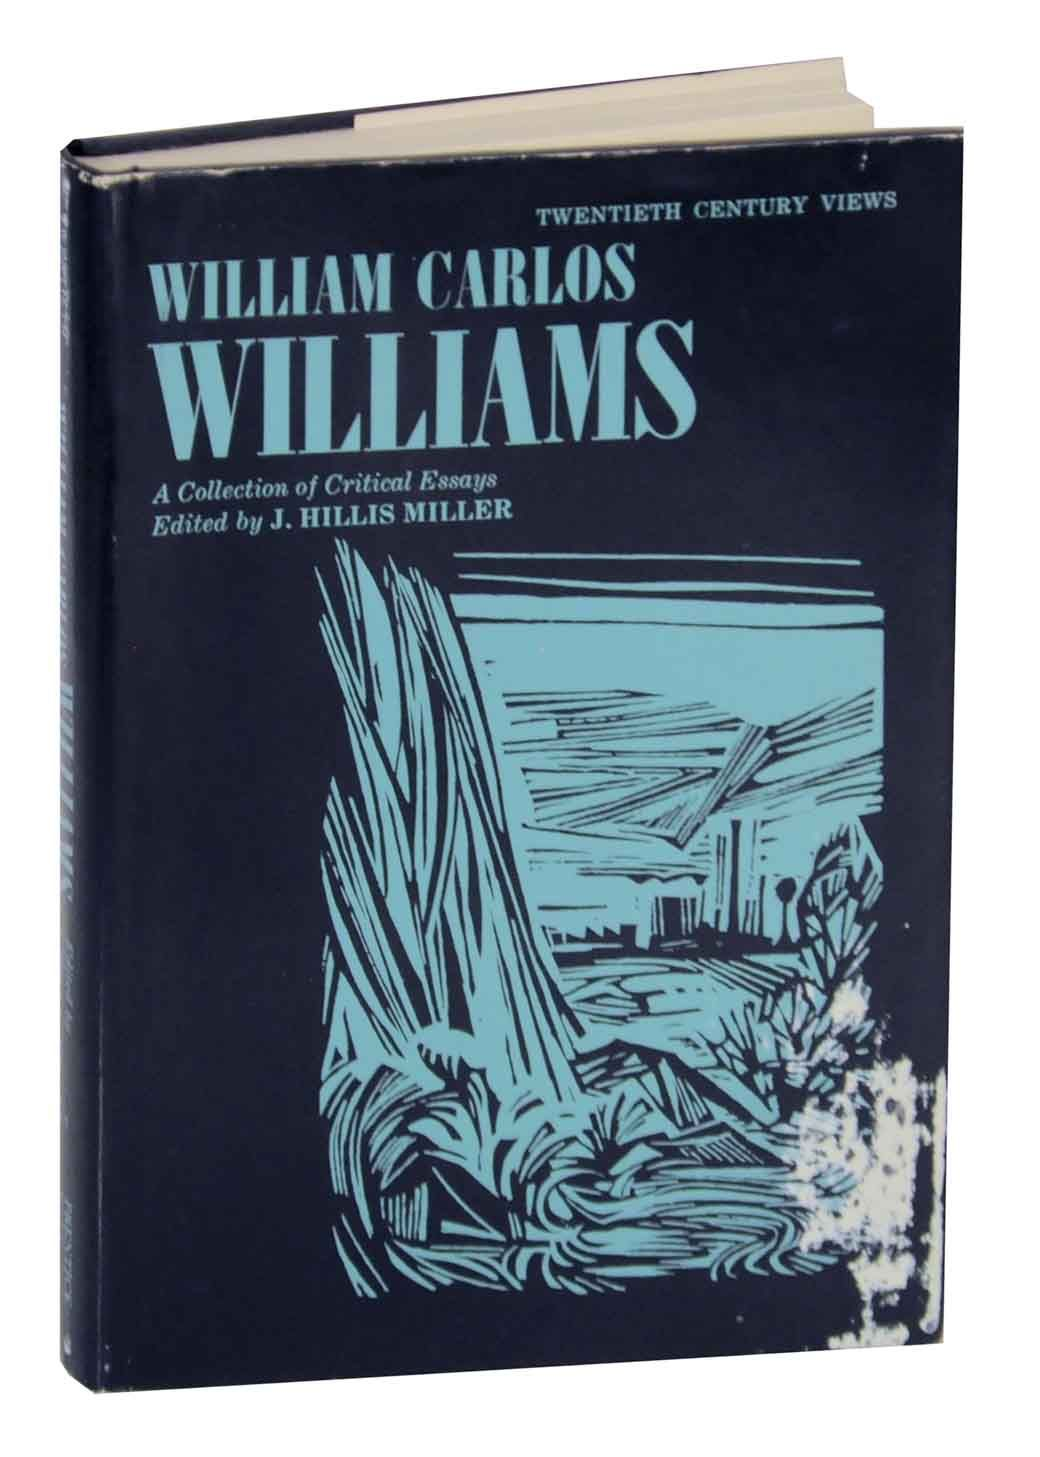 william carlos williams essay William carlos williams the use of force essayswilliam carlos williams the use of force deals with a variety of emotions felt by a doctor during a house call the story begins when a physician is summoned to make a house call on a family with whom he has had no prior contact.